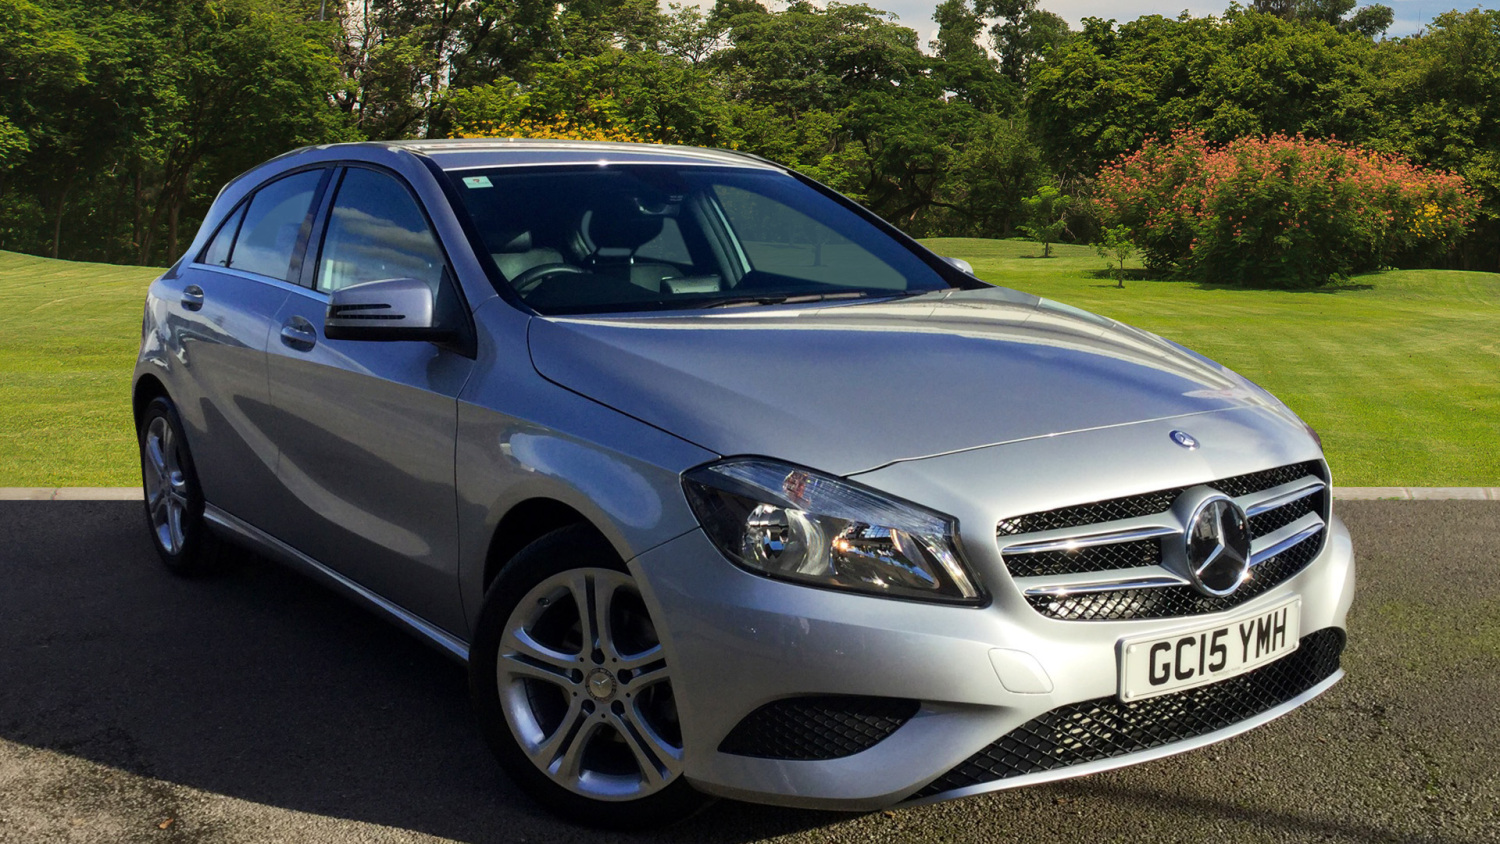 used mercedes benz a class a180 cdi sport edition 5dr auto diesel hatchback for sale vertu honda. Black Bedroom Furniture Sets. Home Design Ideas